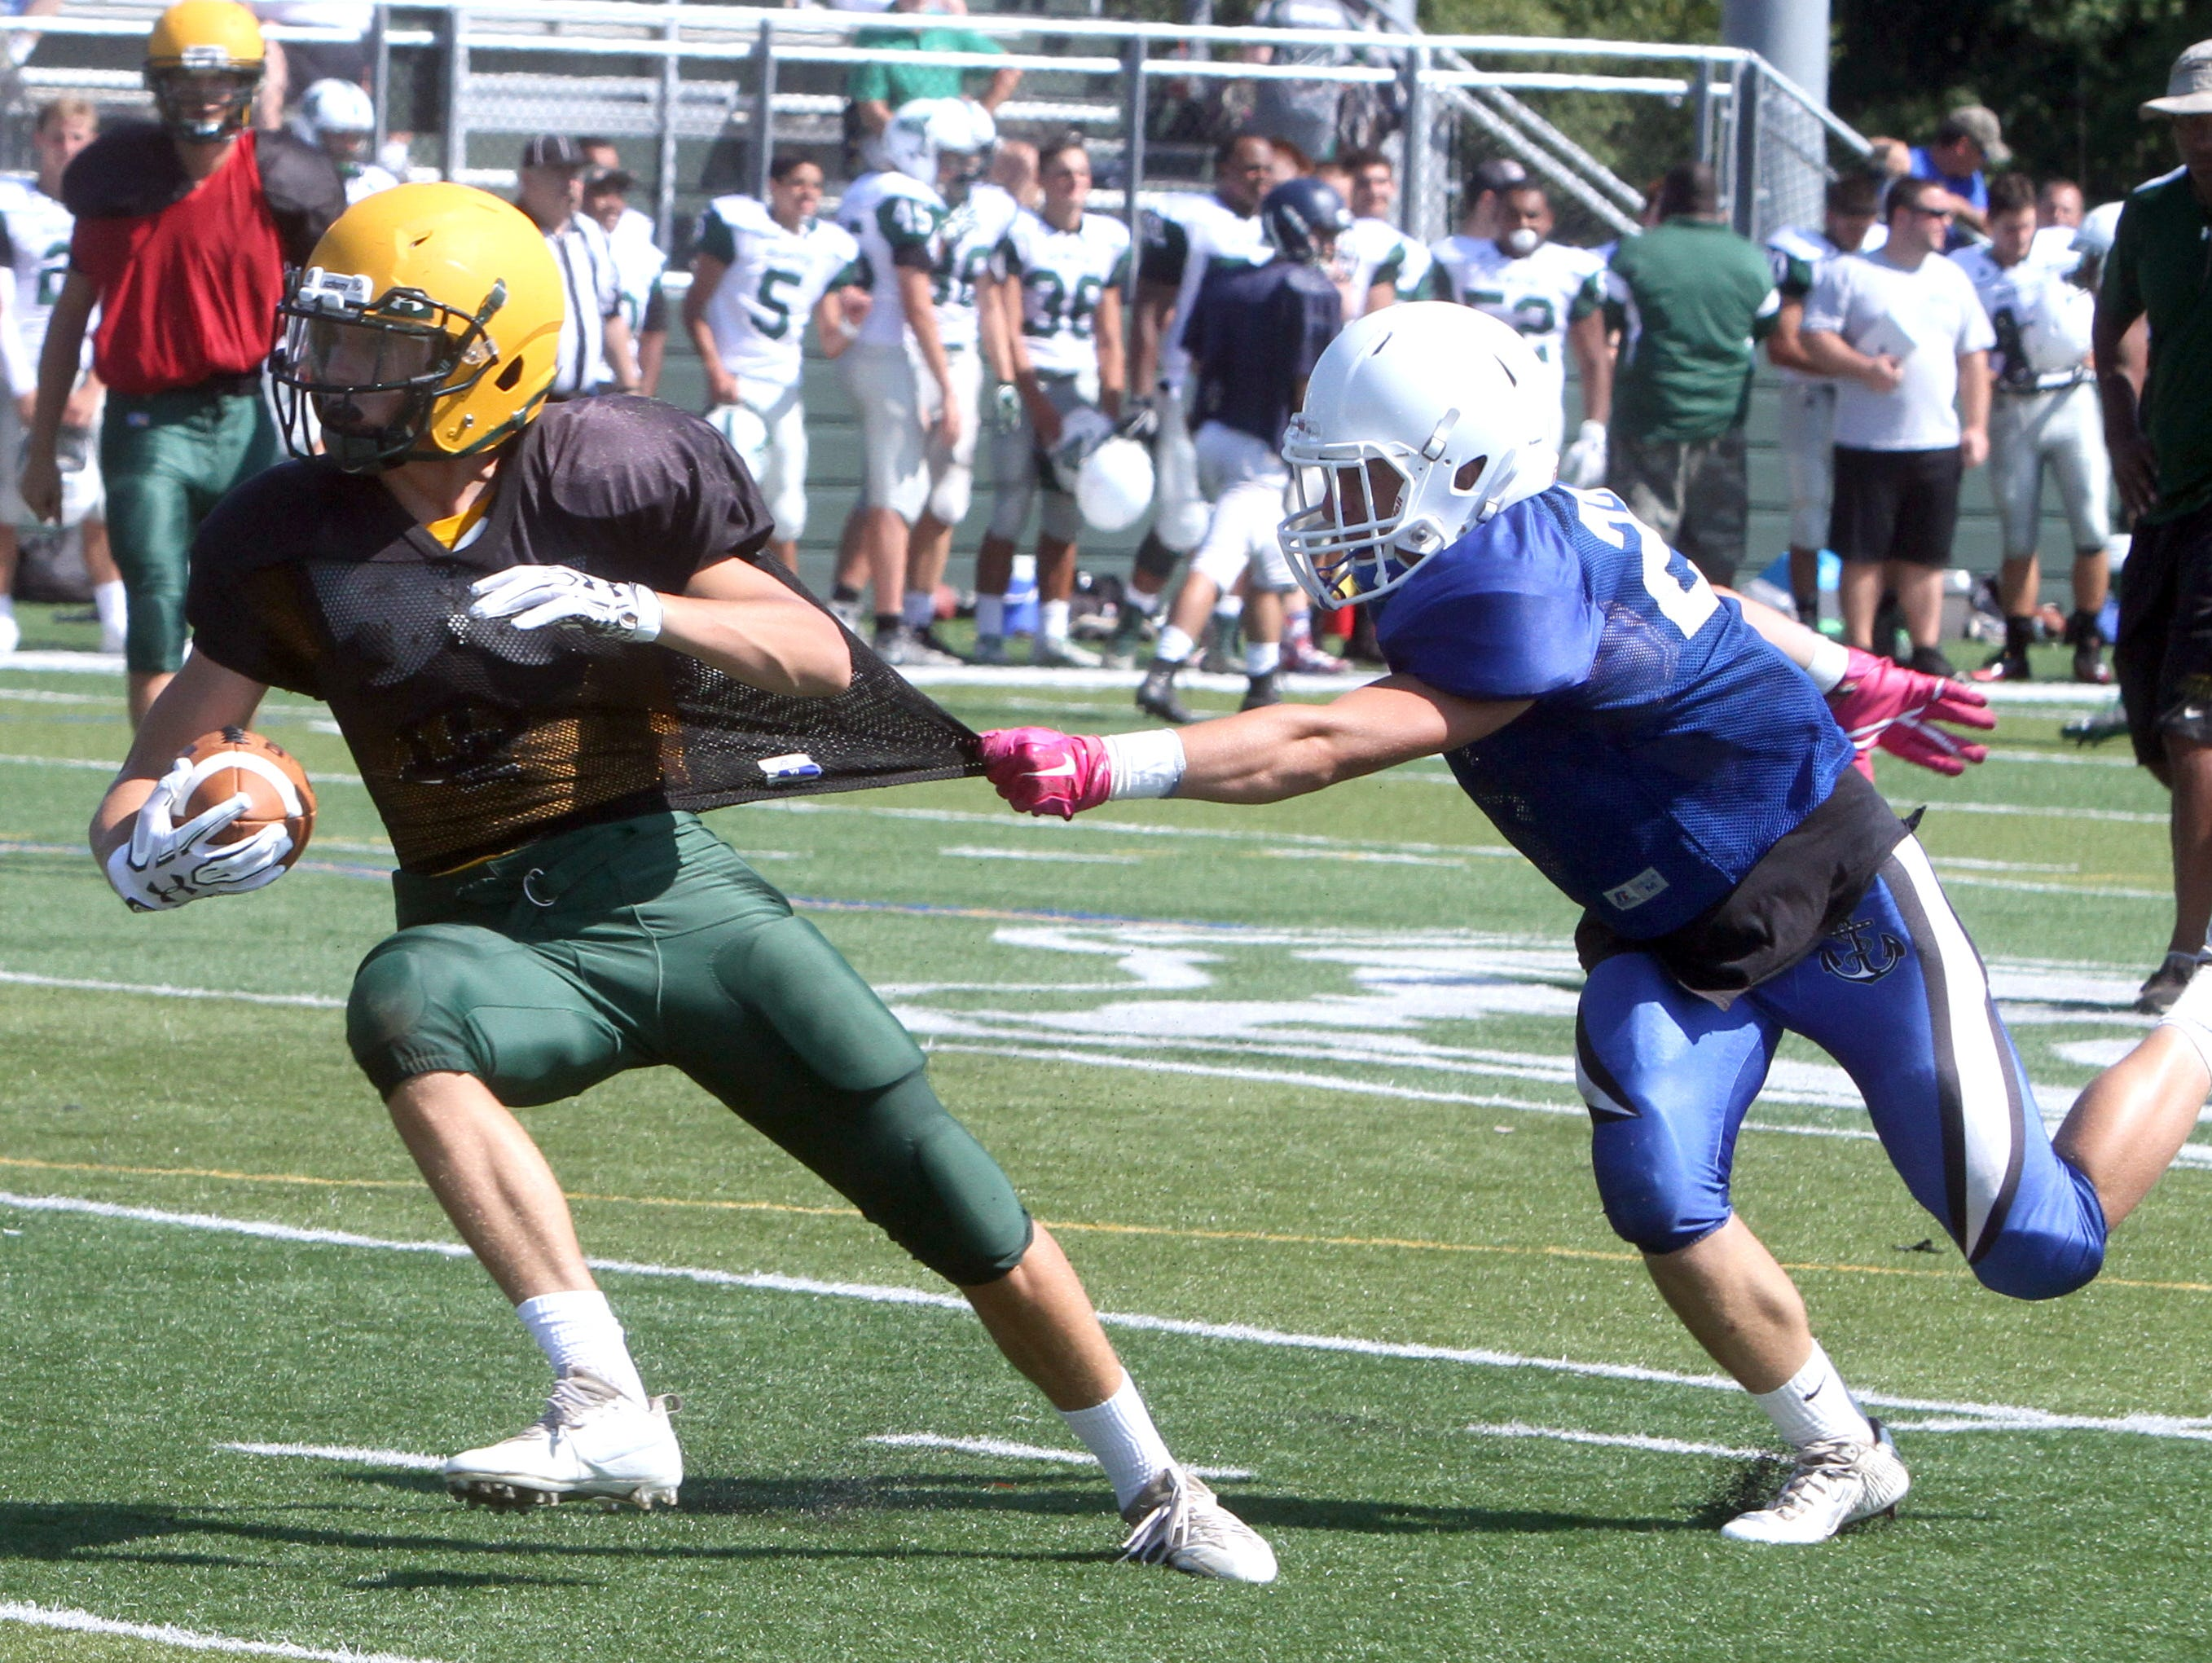 Lakeland and Hendrick Hudson play during a multi-team football scrimmage at Brewster High School Aug. 27, 2016. Several area teams took part in the scrimmage in advance of next weekend's season opening games.